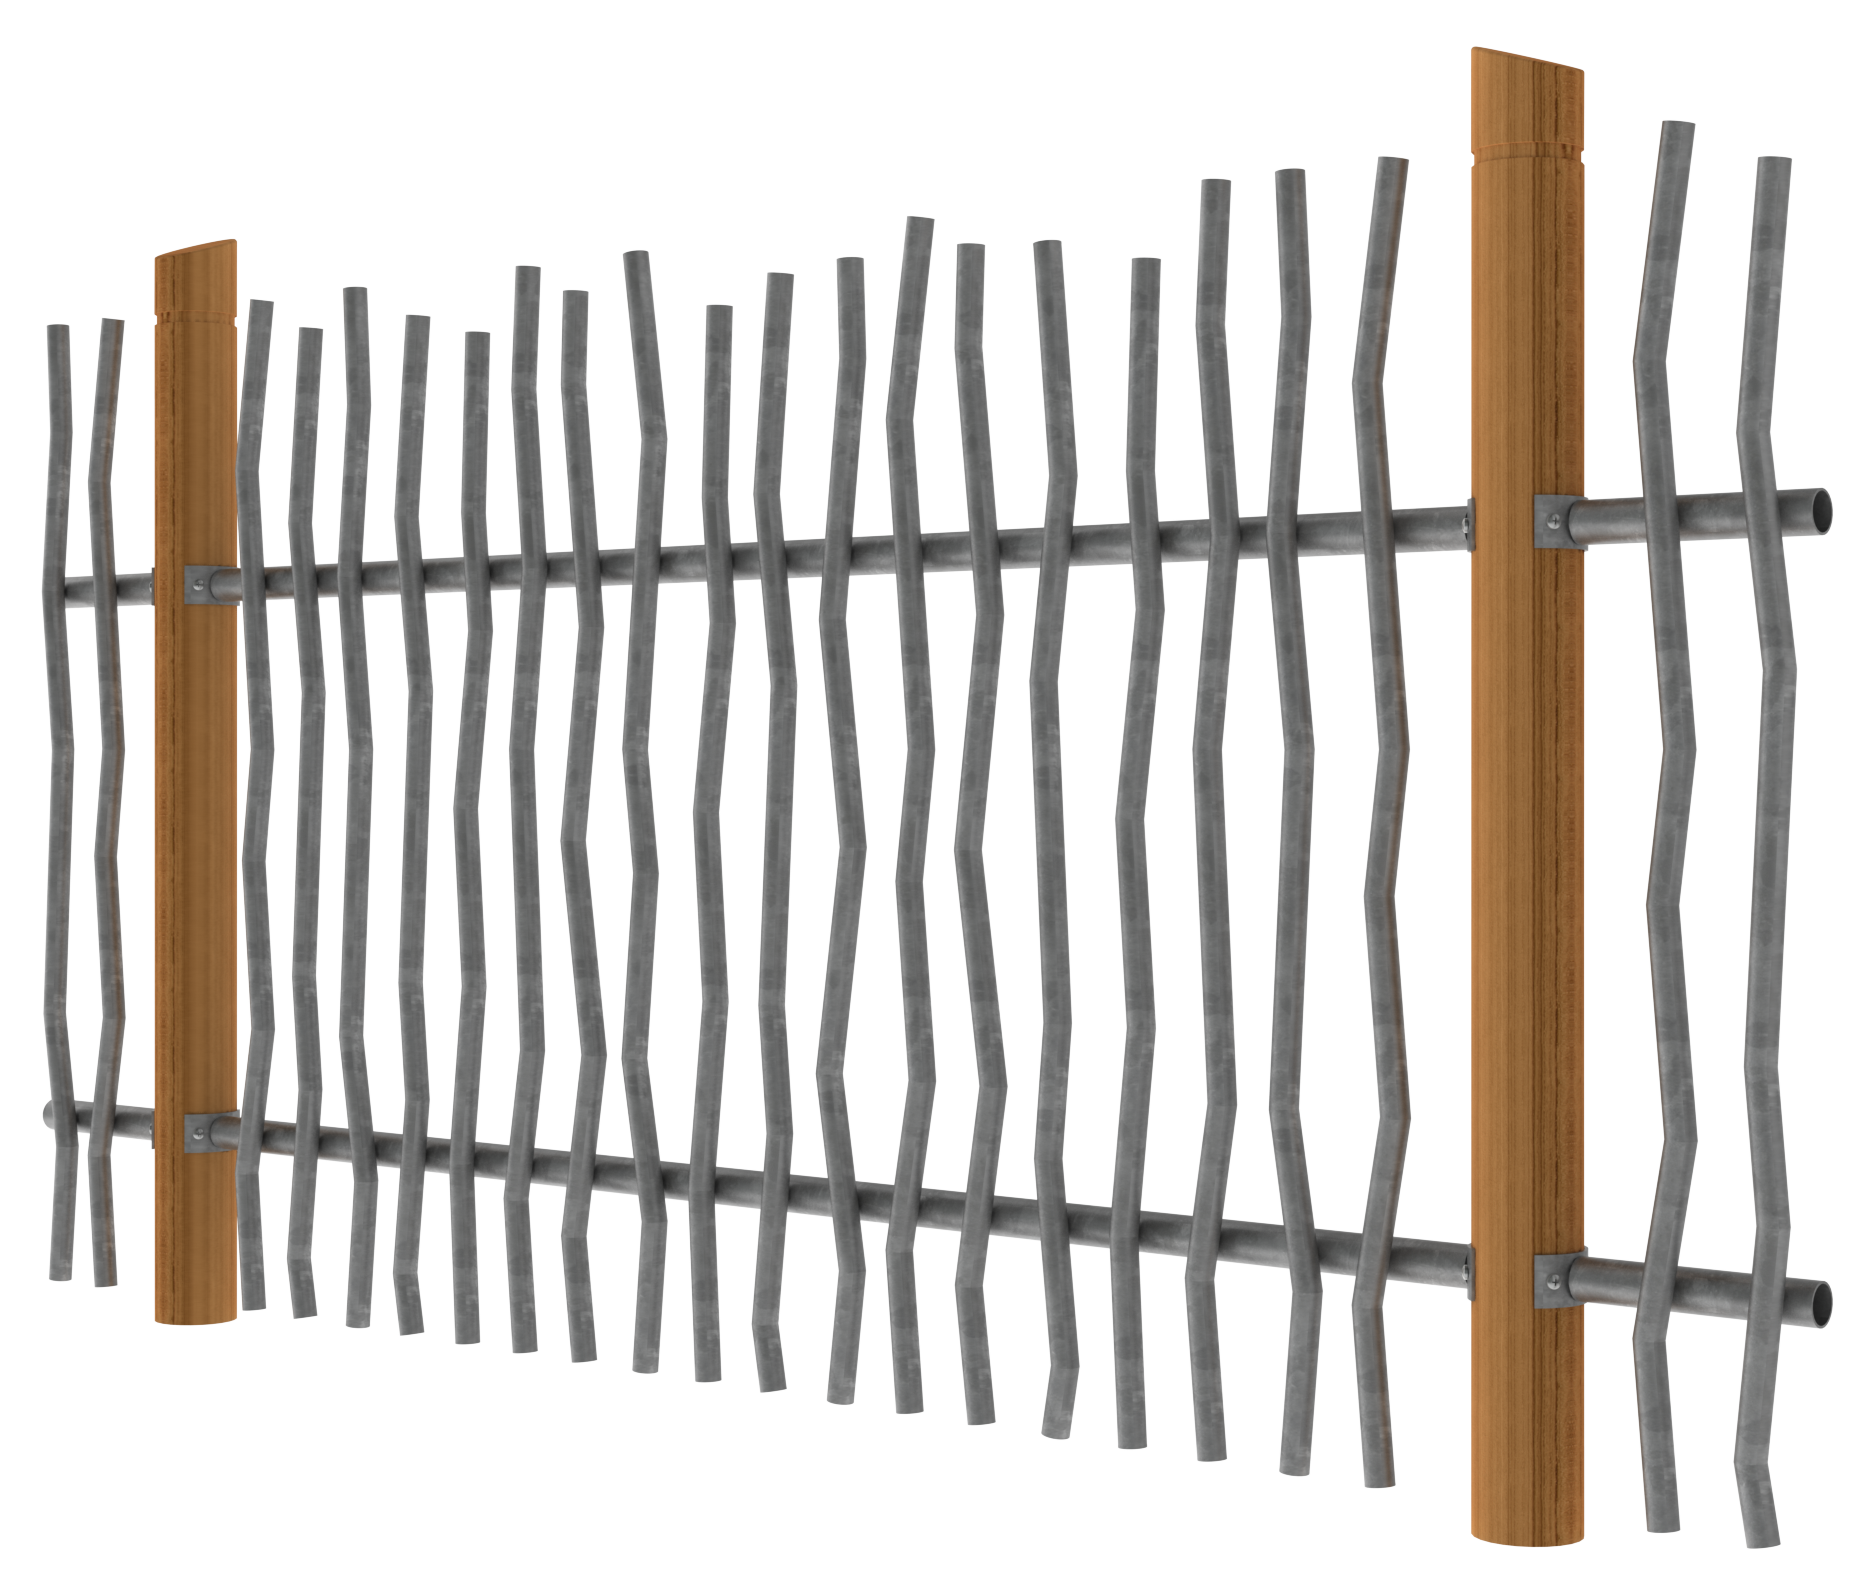 Custom-Wiggly-Fence.png